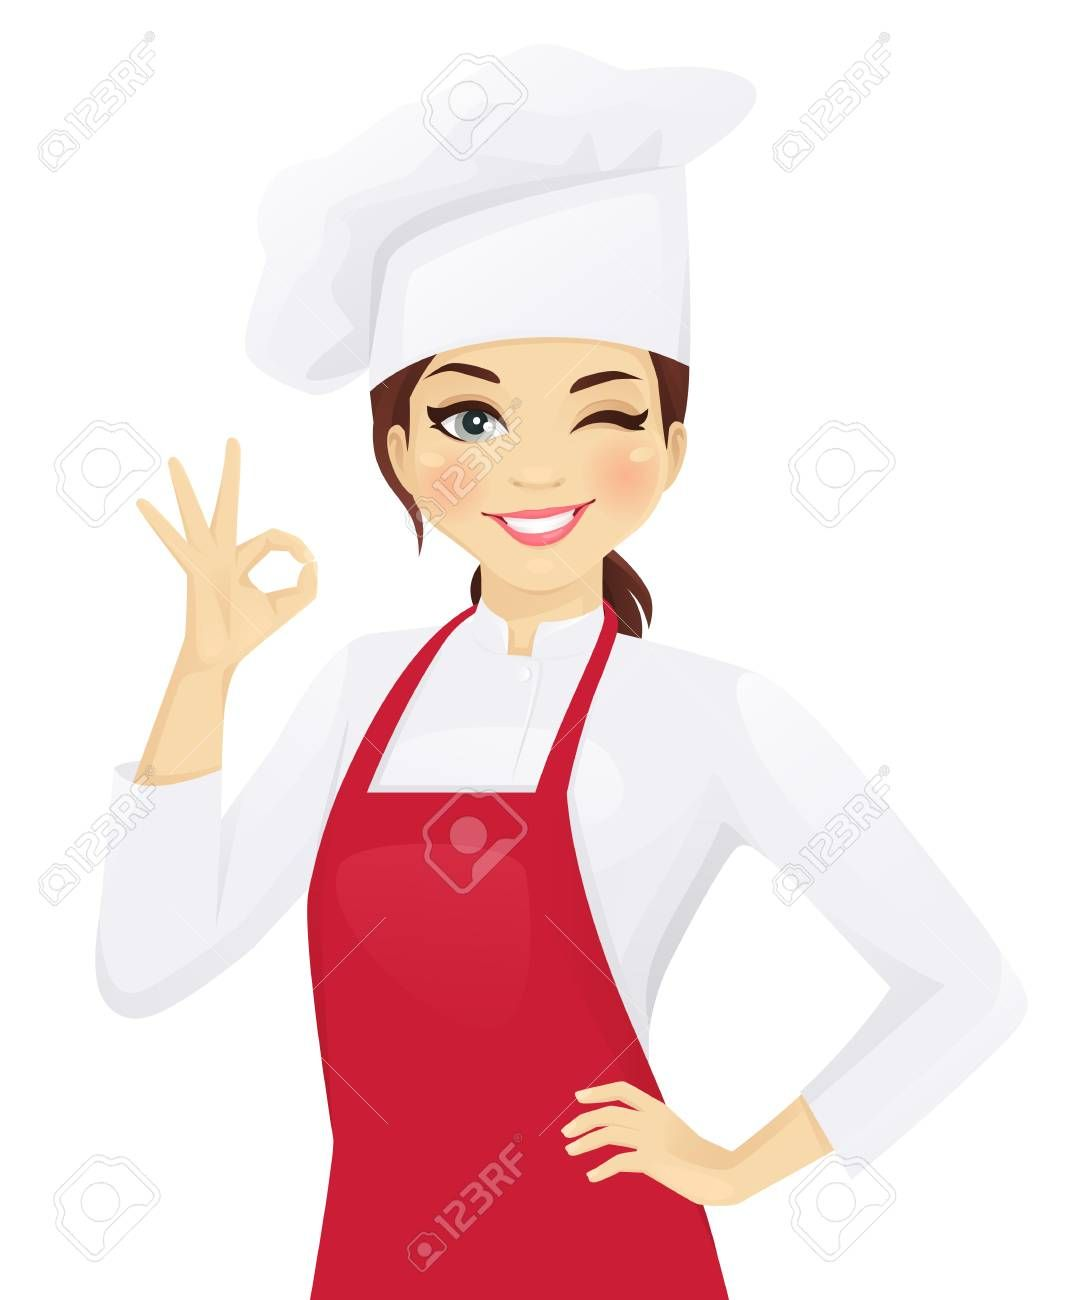 Confident Chef Woman Gesturing Ok Sign Vector Illustration Ad Woman Chef Confident Gesturing Ill Font Design Logo Illustration Vector Illustration